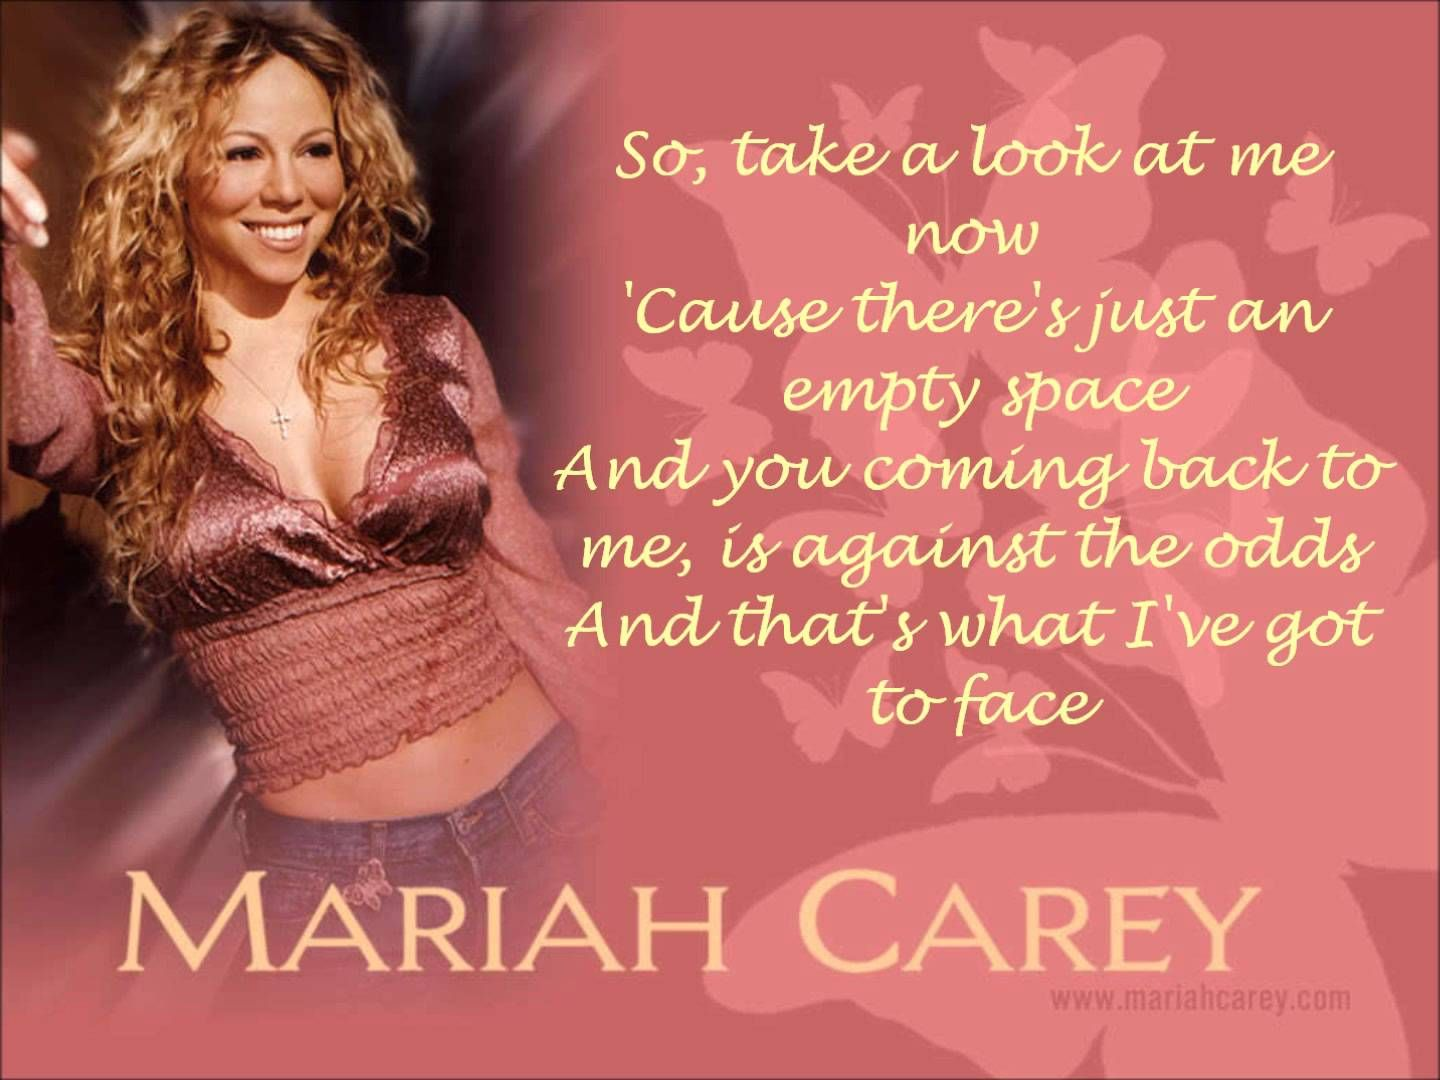 Mariah Carey Against All Odds Take A Look At Me Now Lyrics